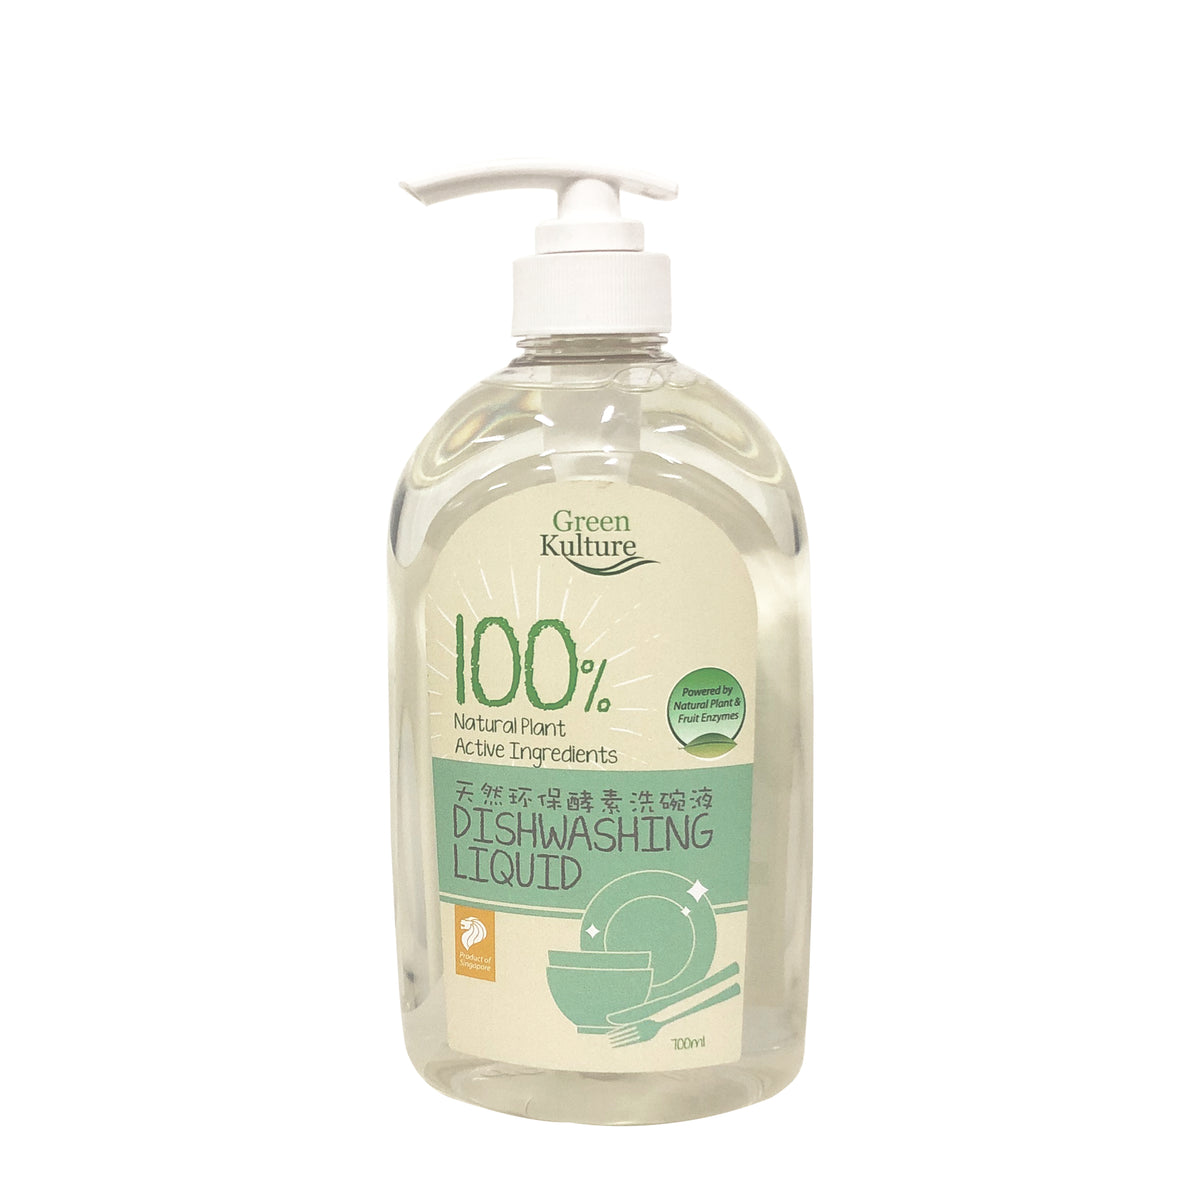 Dishwashing Liquid (700ml)